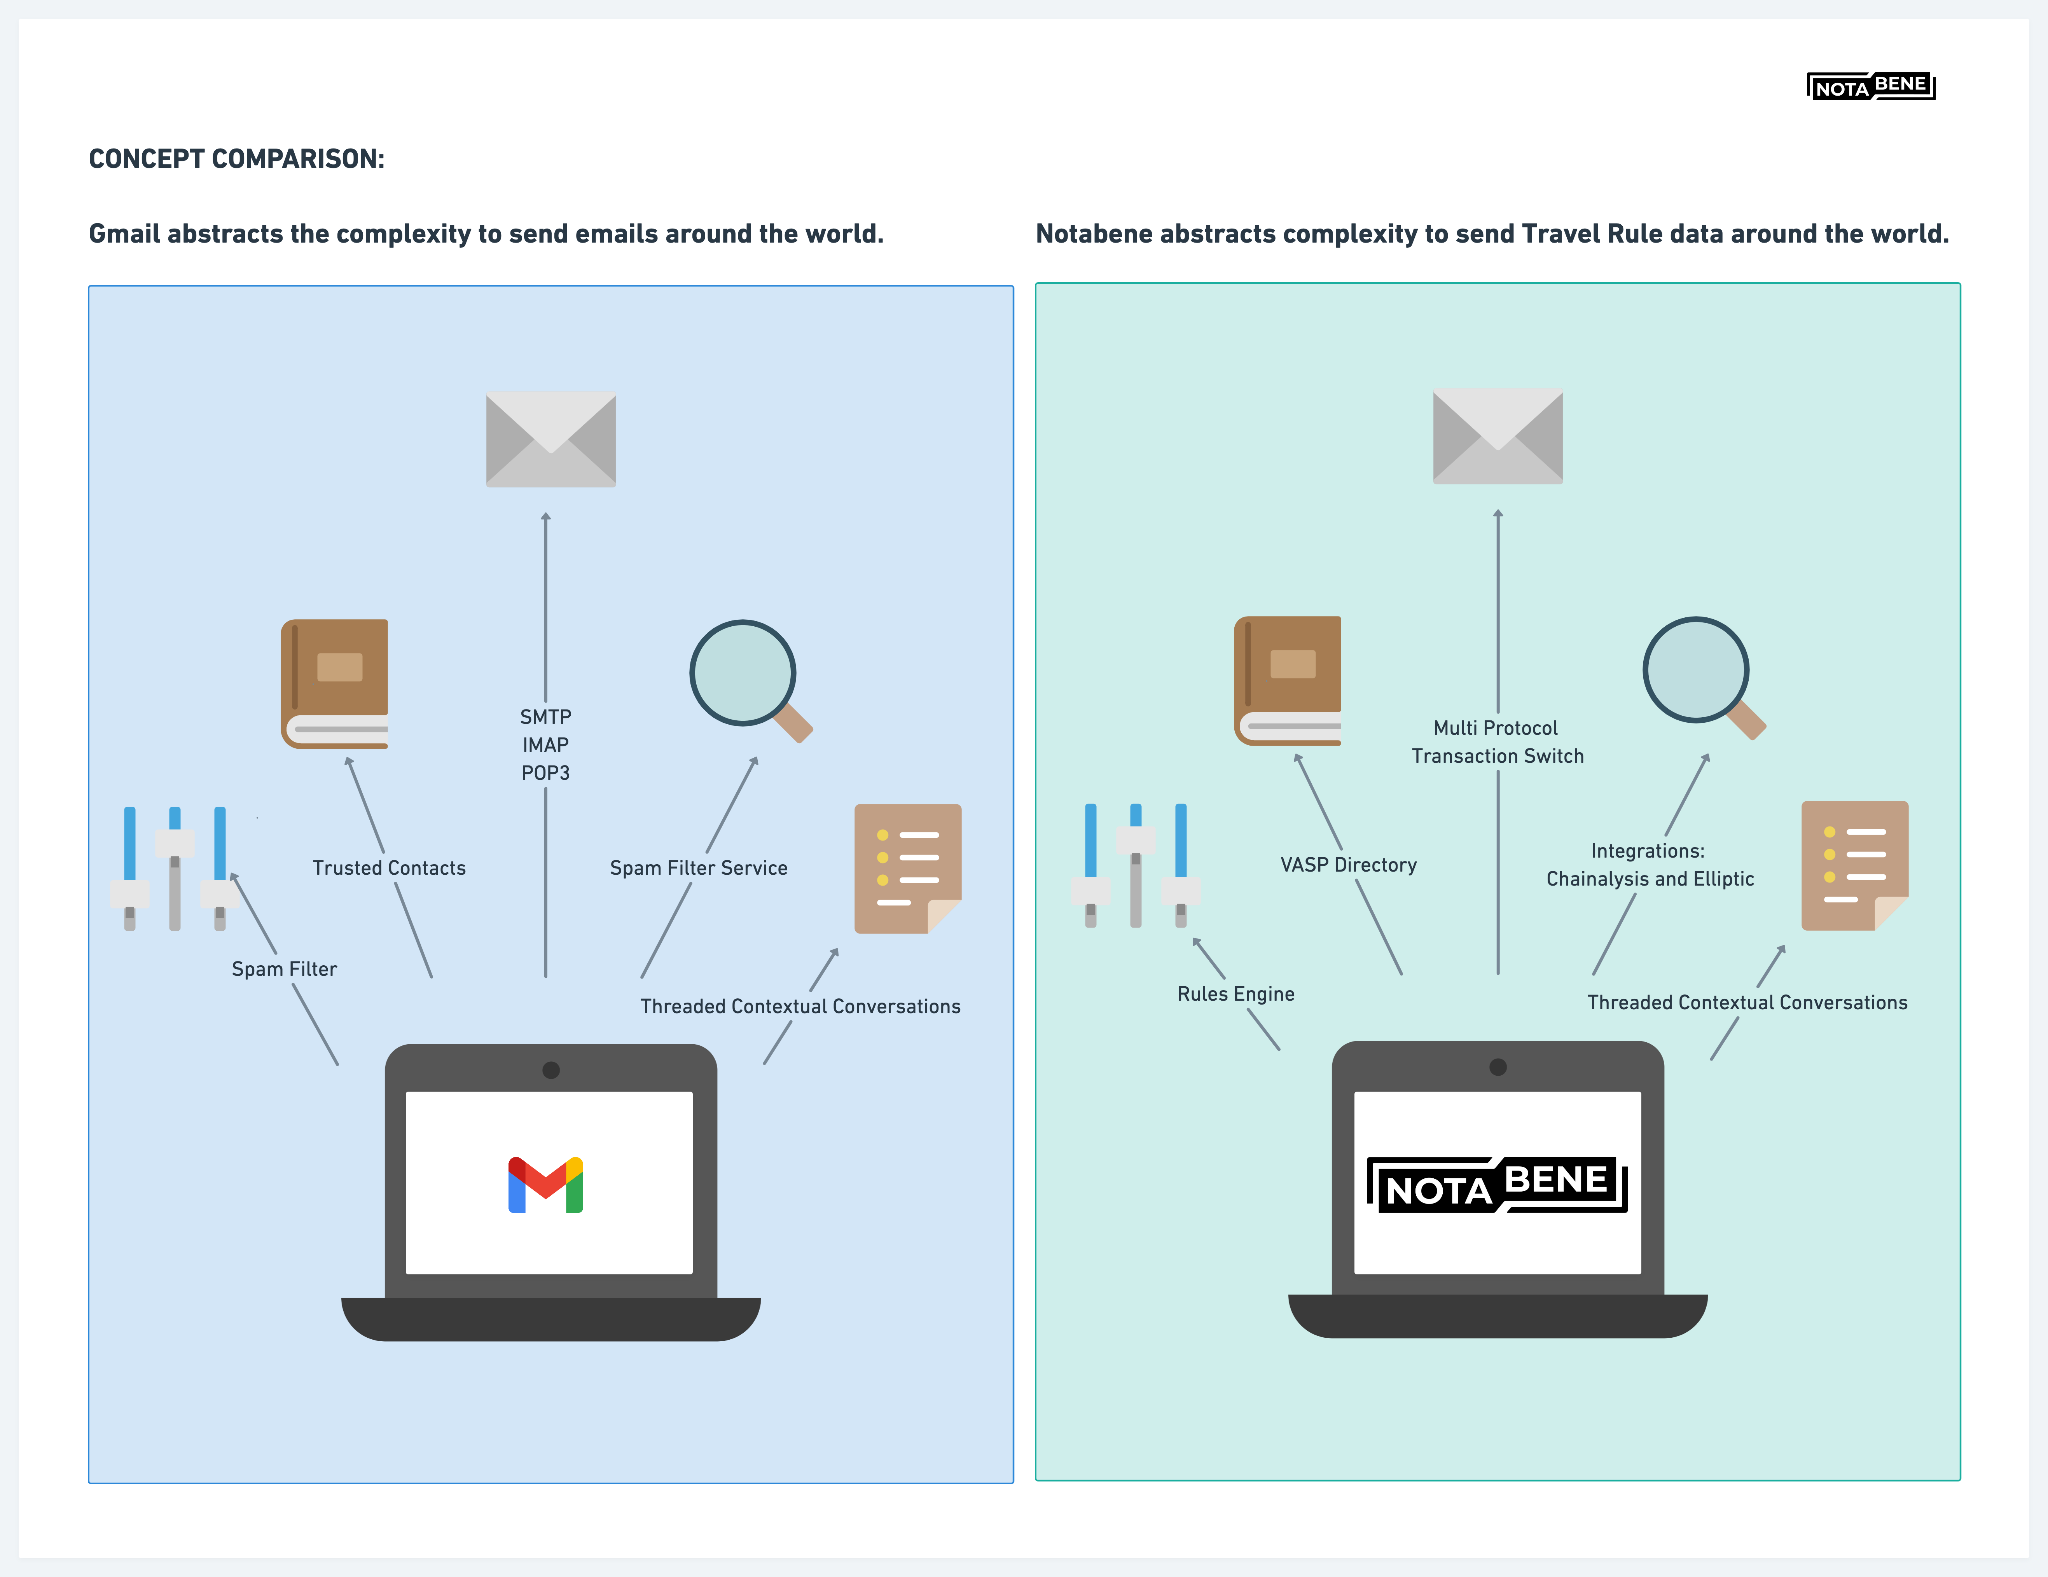 CONCEPT COMPARISON: Gmail abstracts the complexity to send emails around the world as Notabene abstracts complexity to send Travel Rule data around the world.